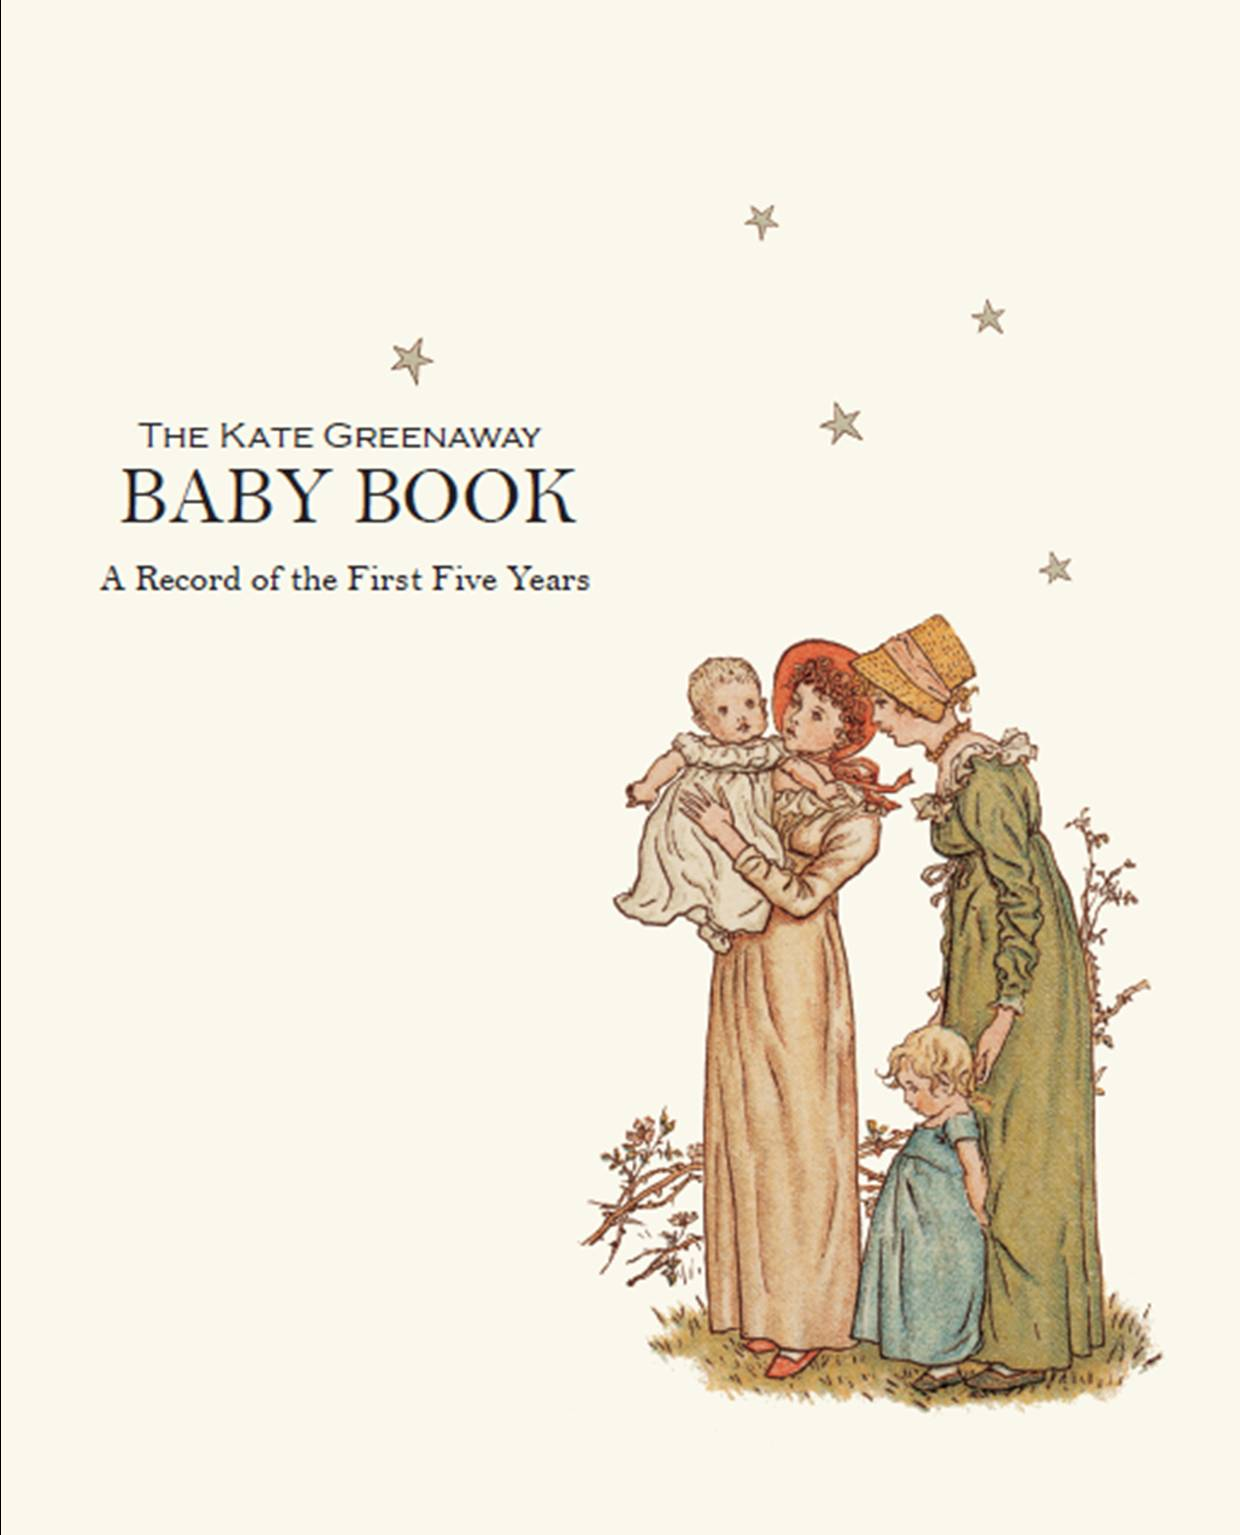 Baby Book Published